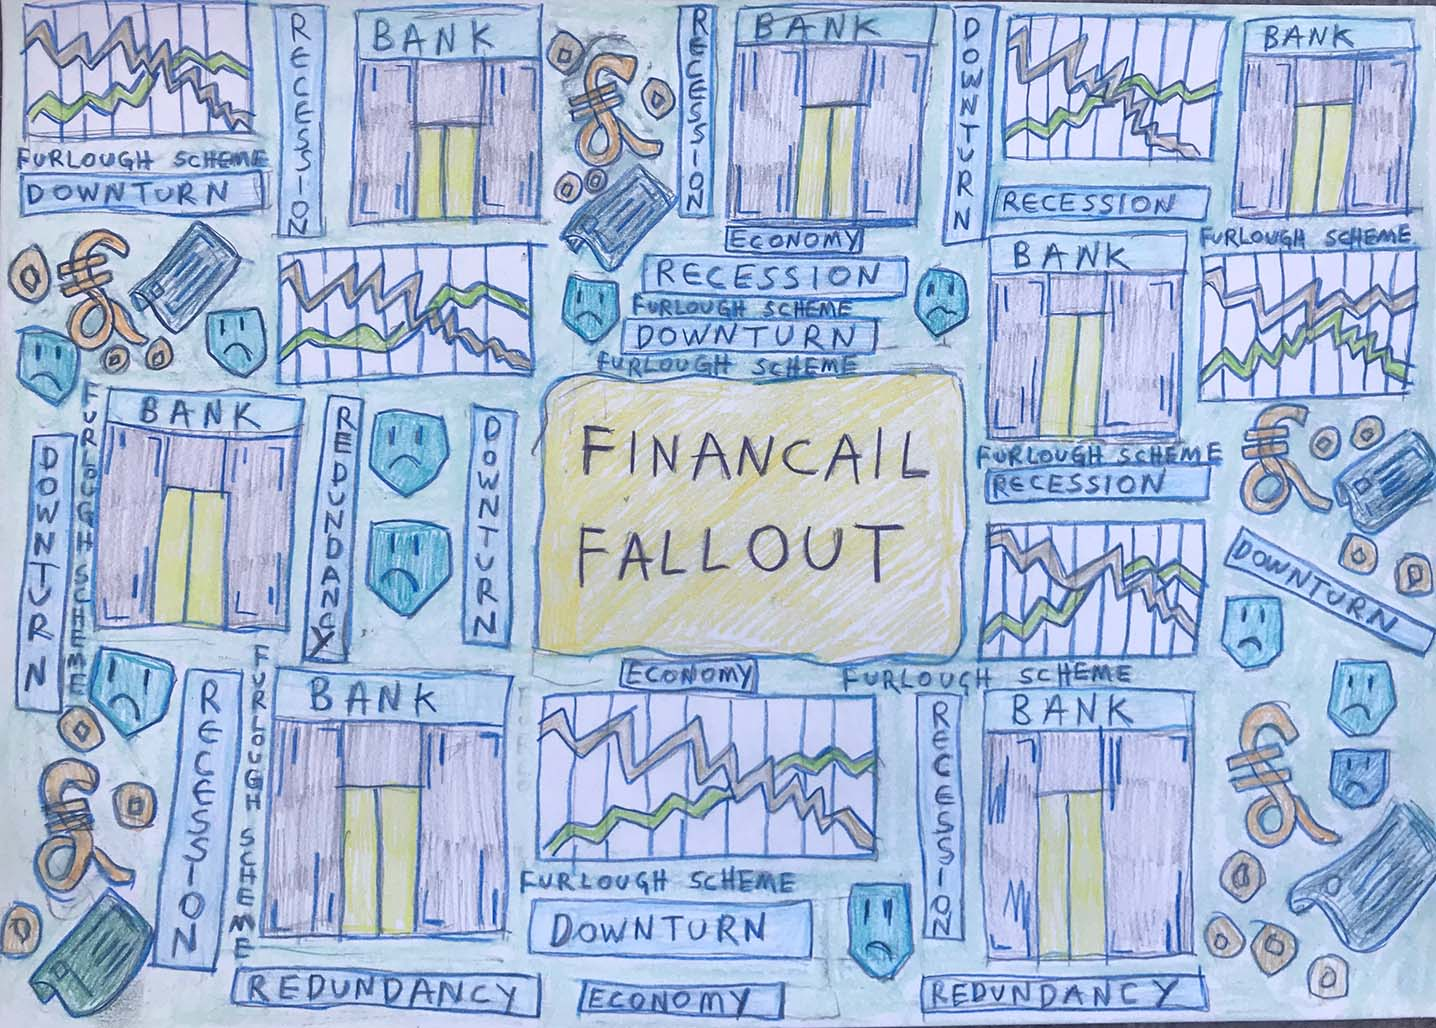 Financial Fallout